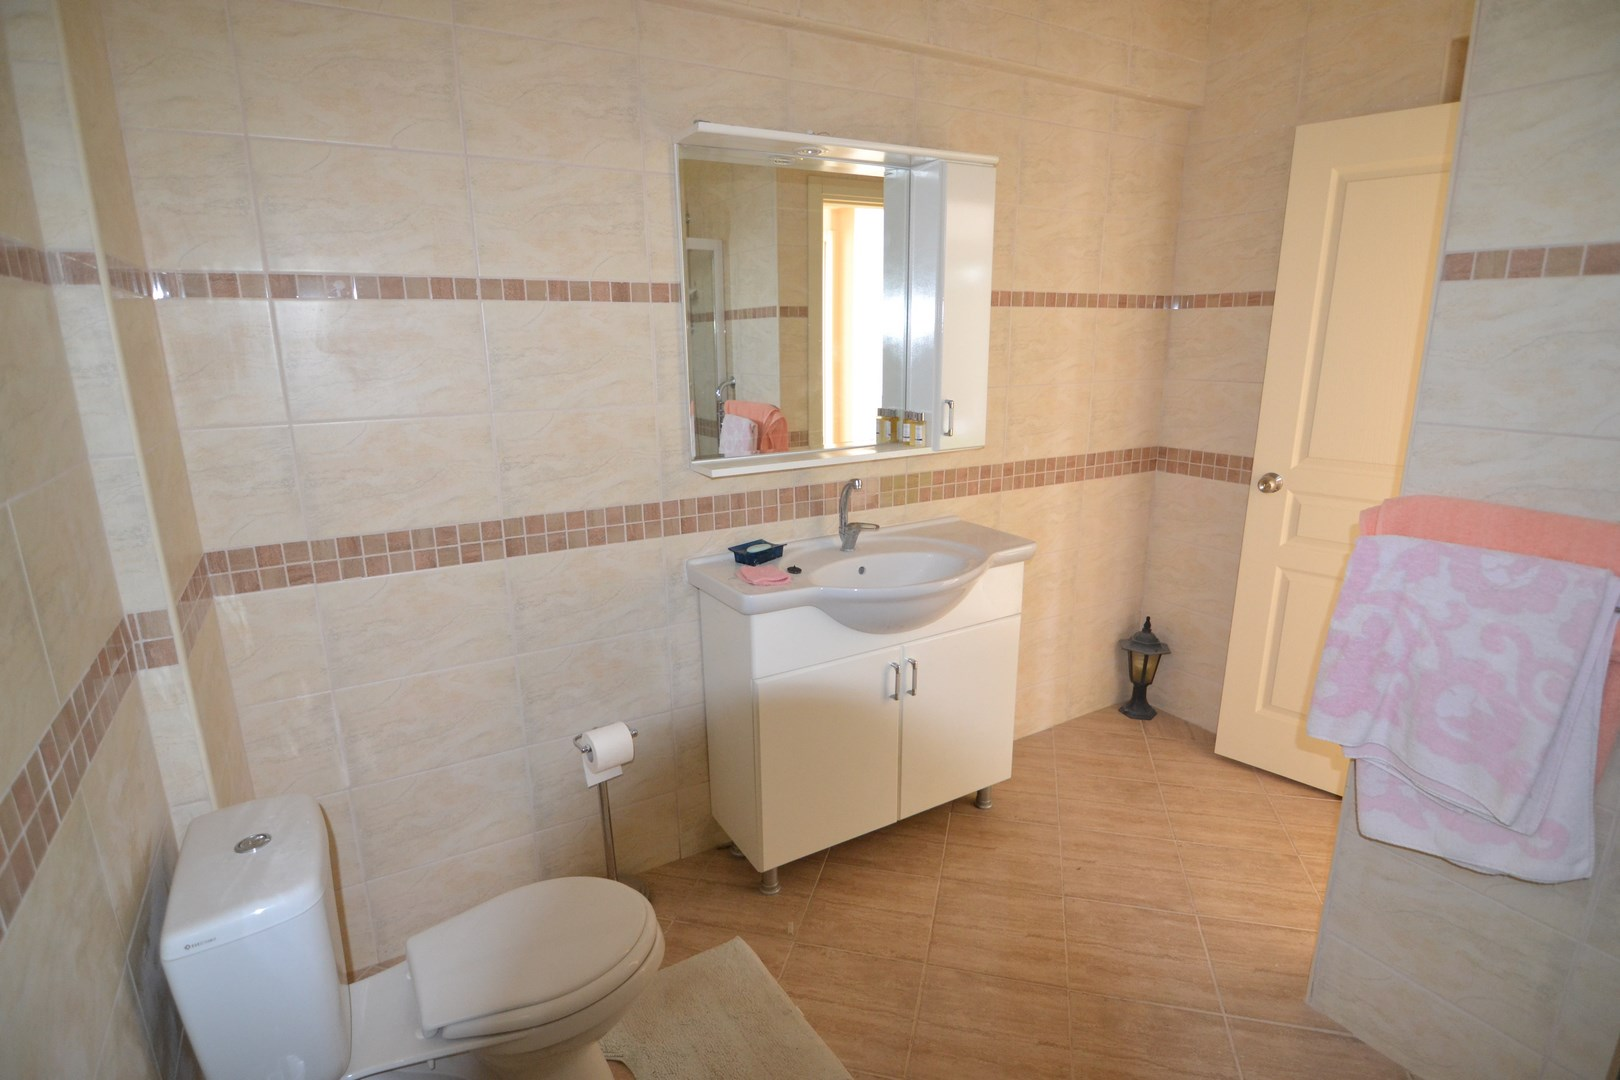 3 Bedroom semi detached villa for sale in Akbuk Turkey